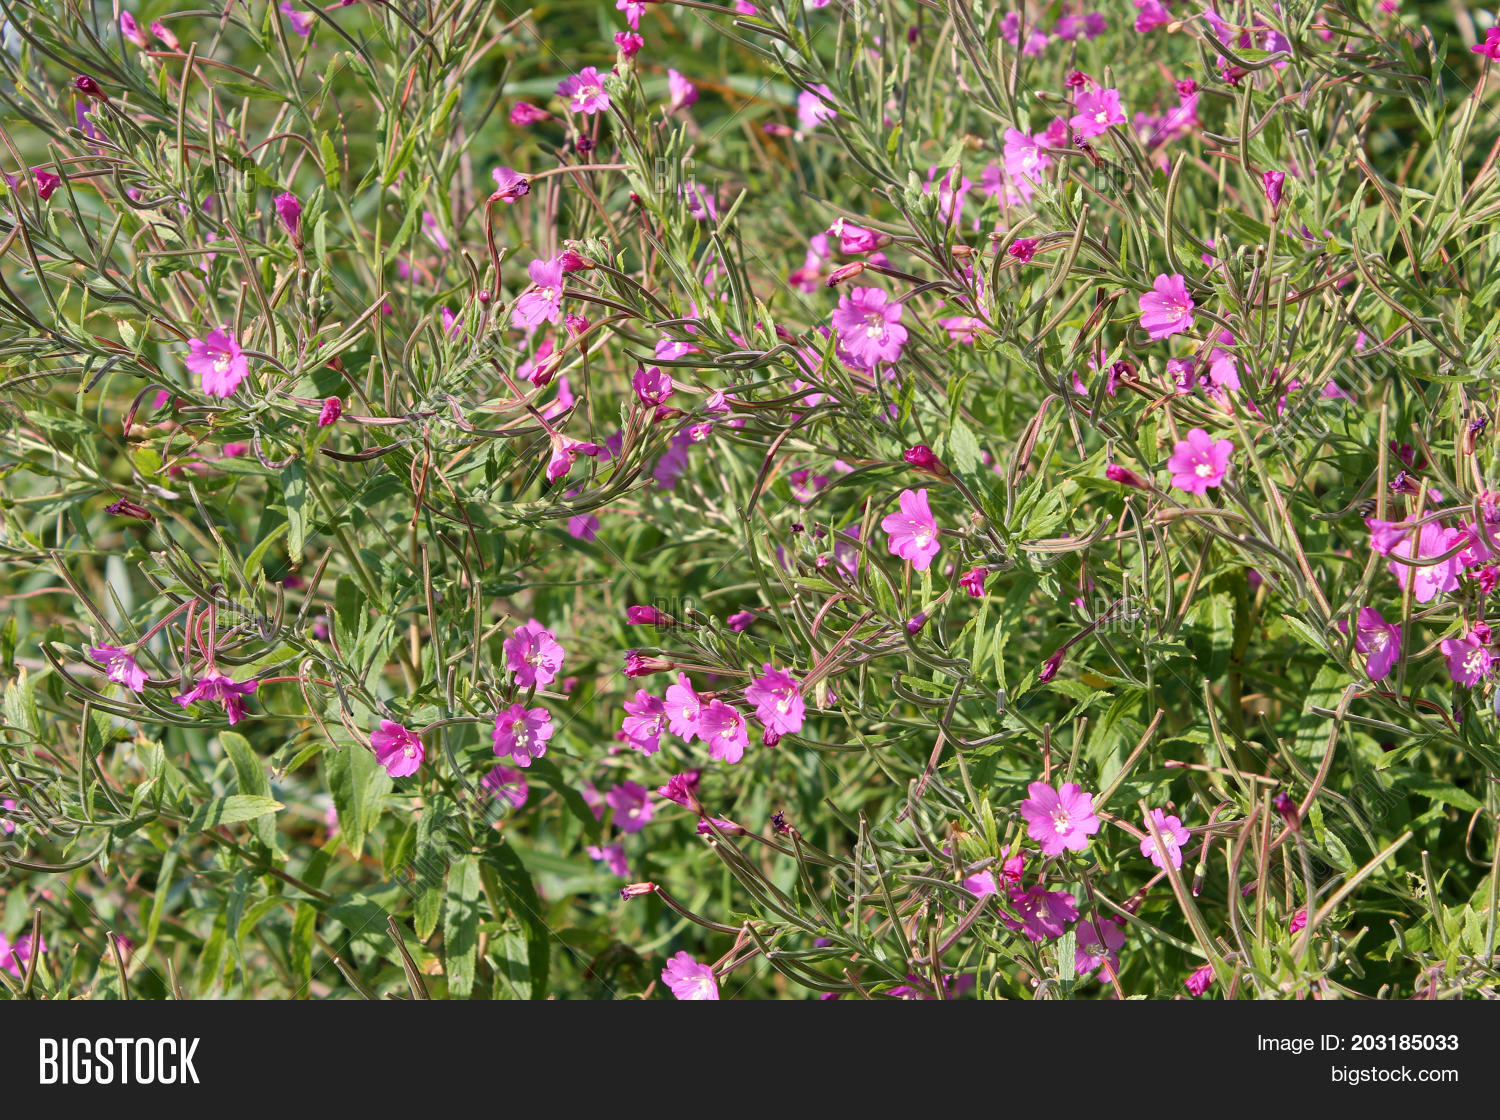 Great Hairy Willowherb Image Photo Free Trial Bigstock